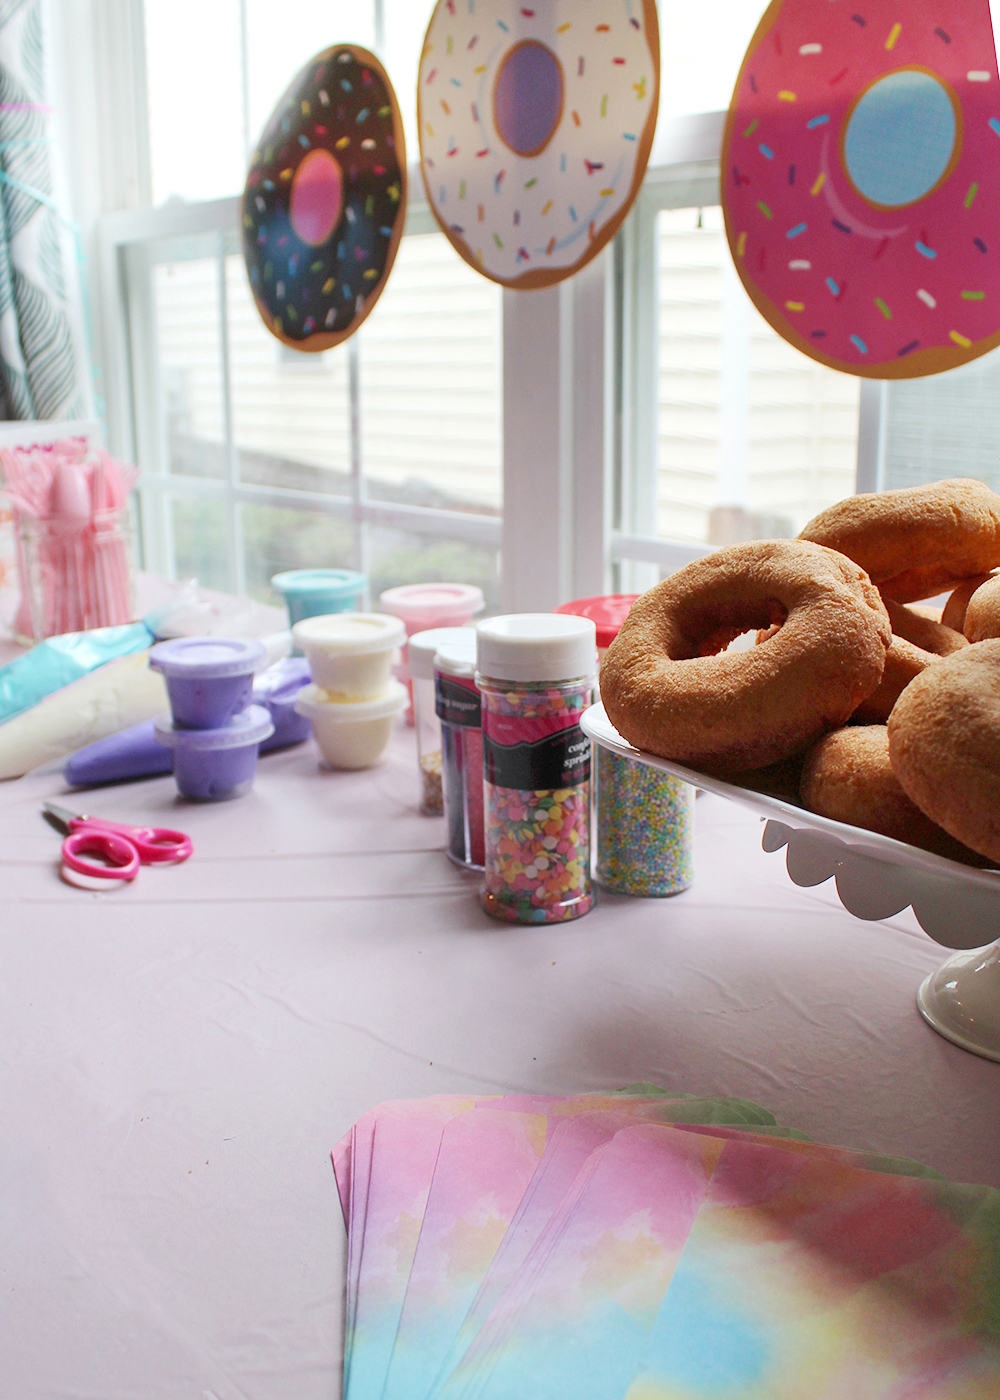 how to host a donut decorating party at home #partyidea #birthdayparty #donutparty #kidsparty